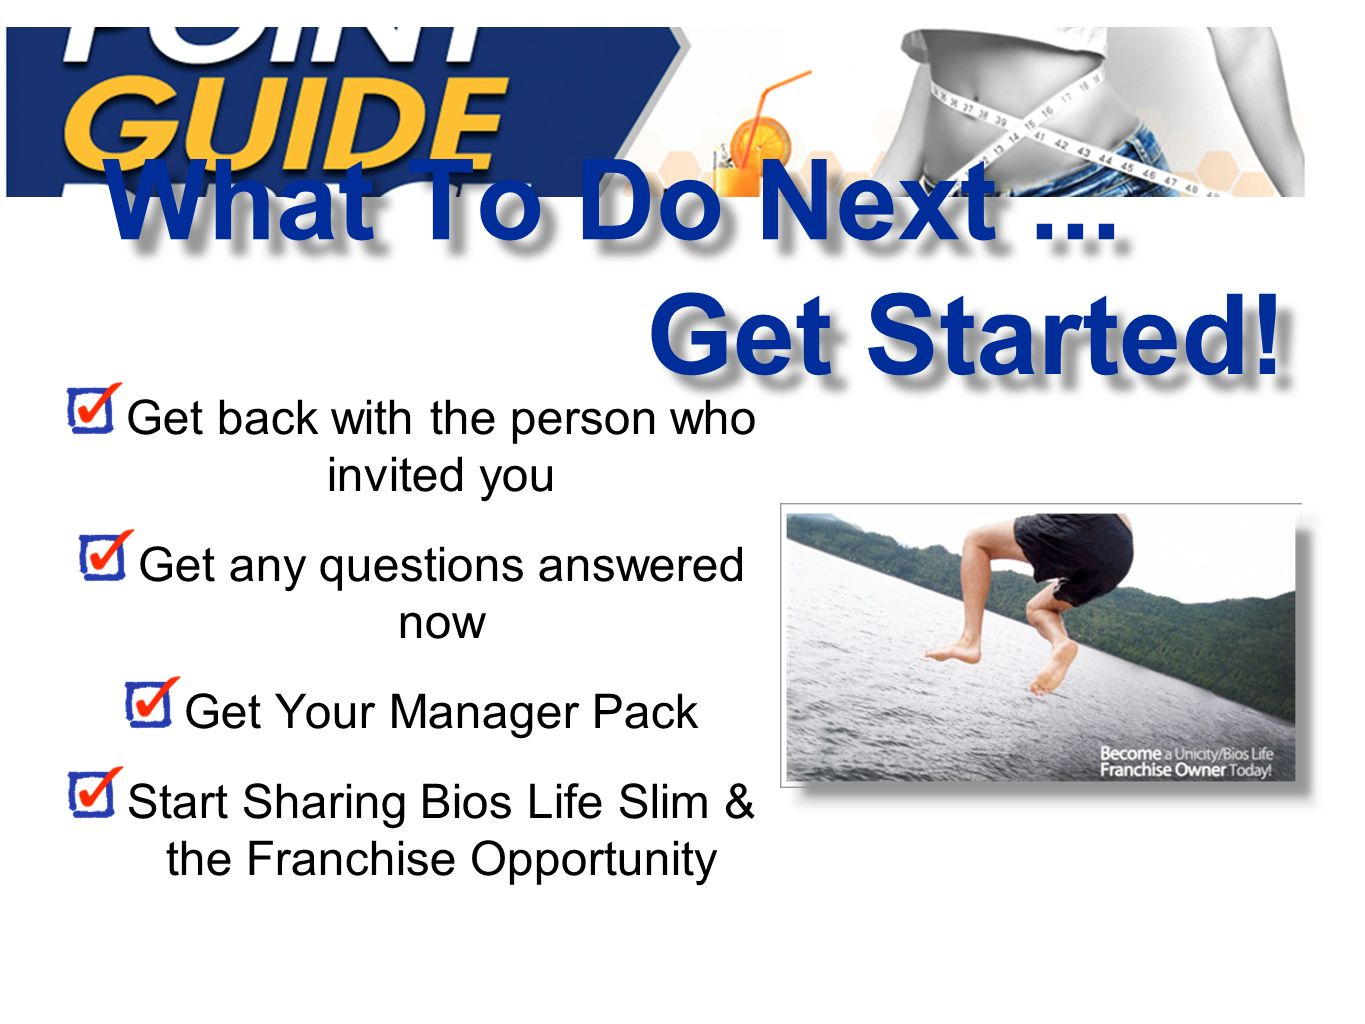 Get back with the person who invited you Get any questions answered now Get Your Manager Pack Start Sharing Bios Life Slim & the Franchise Opportunity What To Do Next...